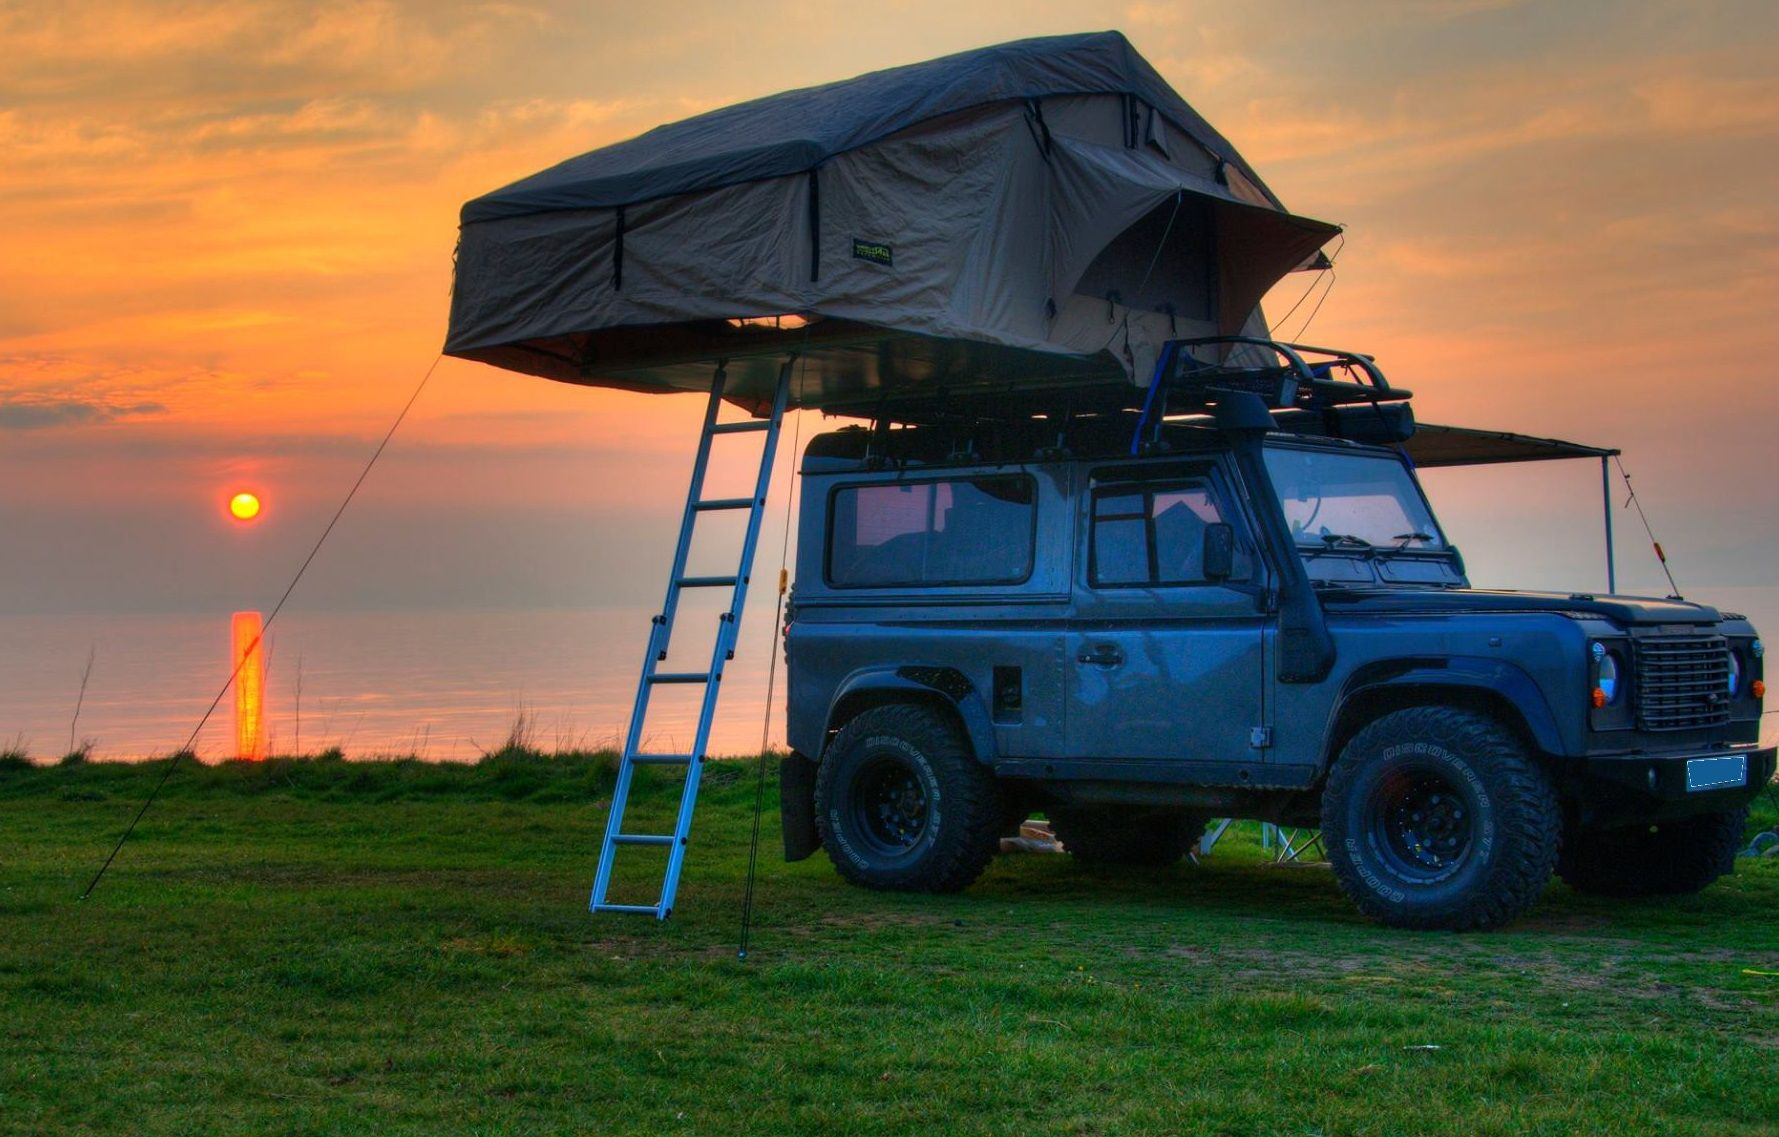 Land Rover Defender Tent Roof Google Search Land Rover Defender Roof Tent Tent